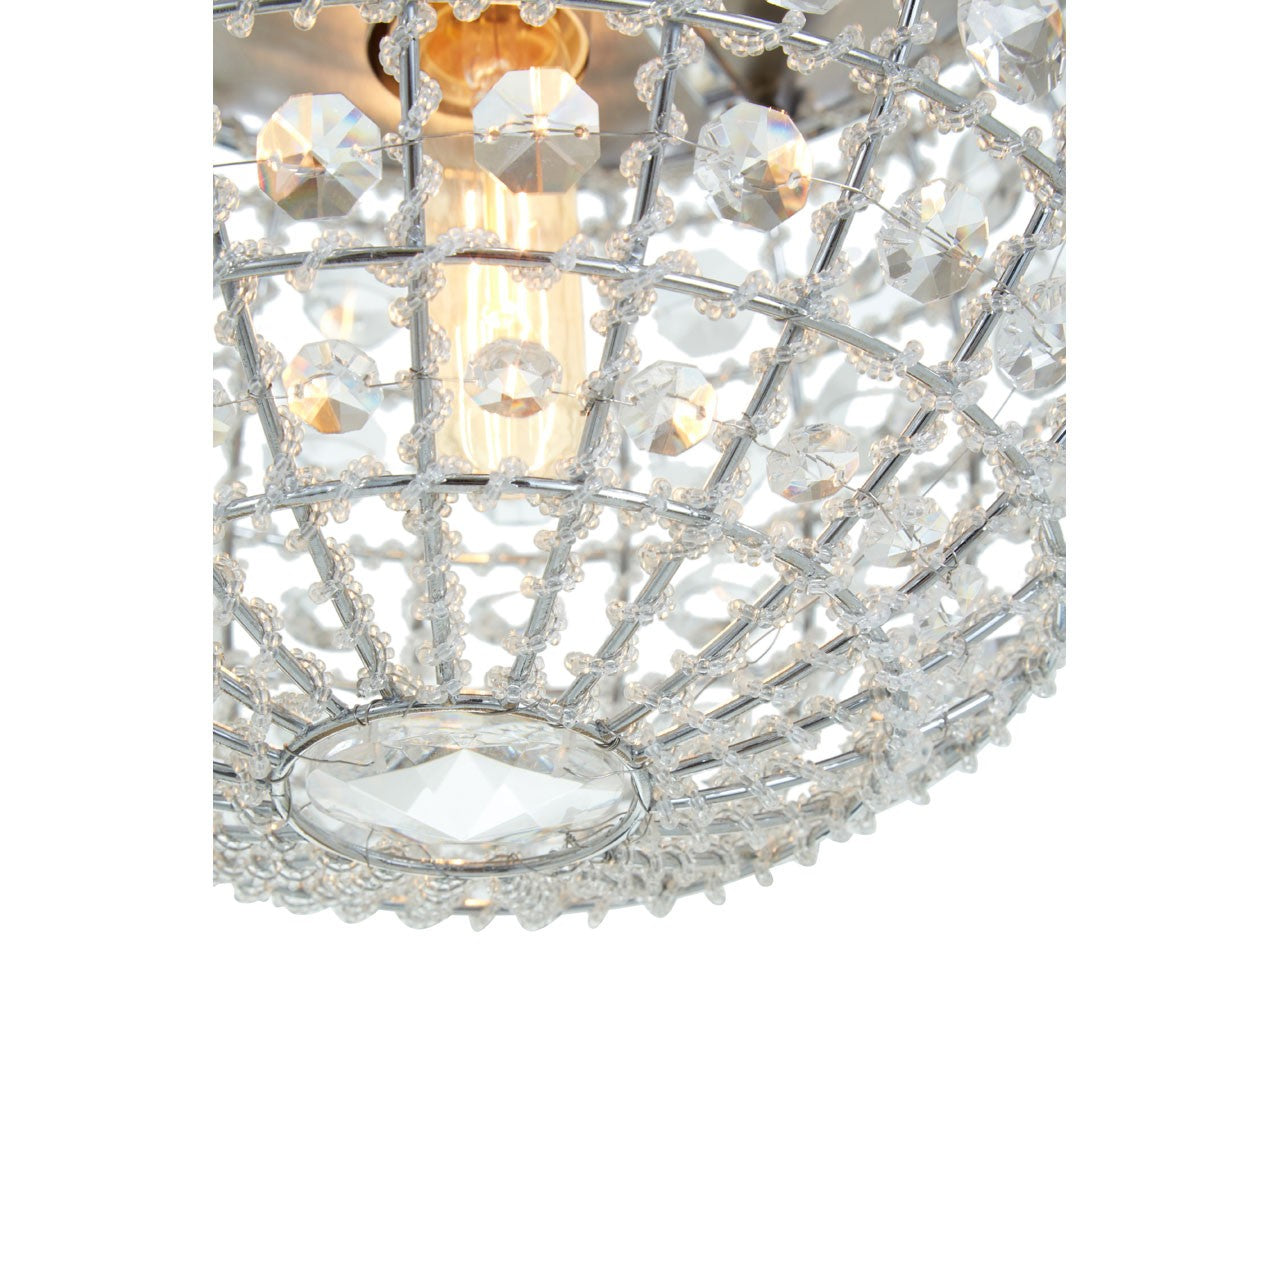 Kensington Townhouse Orb Pendant Light